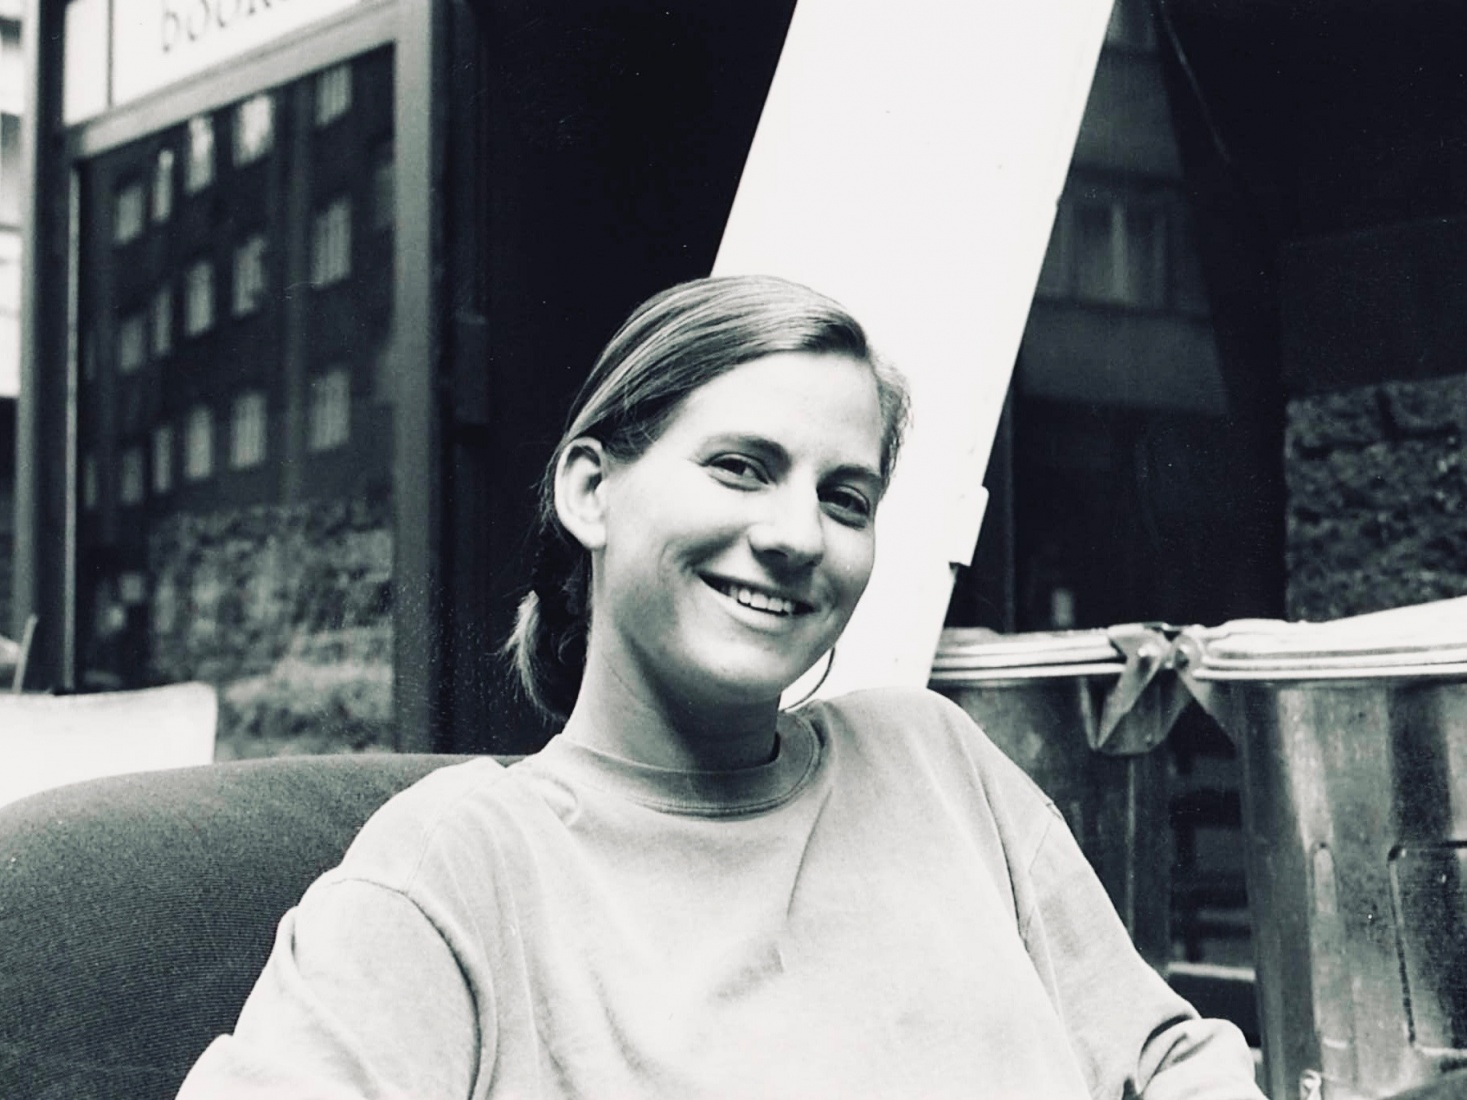 Markéta Rogers smiling at the camera, taking a break from working on store renovations at The Globe Bookstore and Coffeehouse in late spring, 1993, Holešovice, Prague.